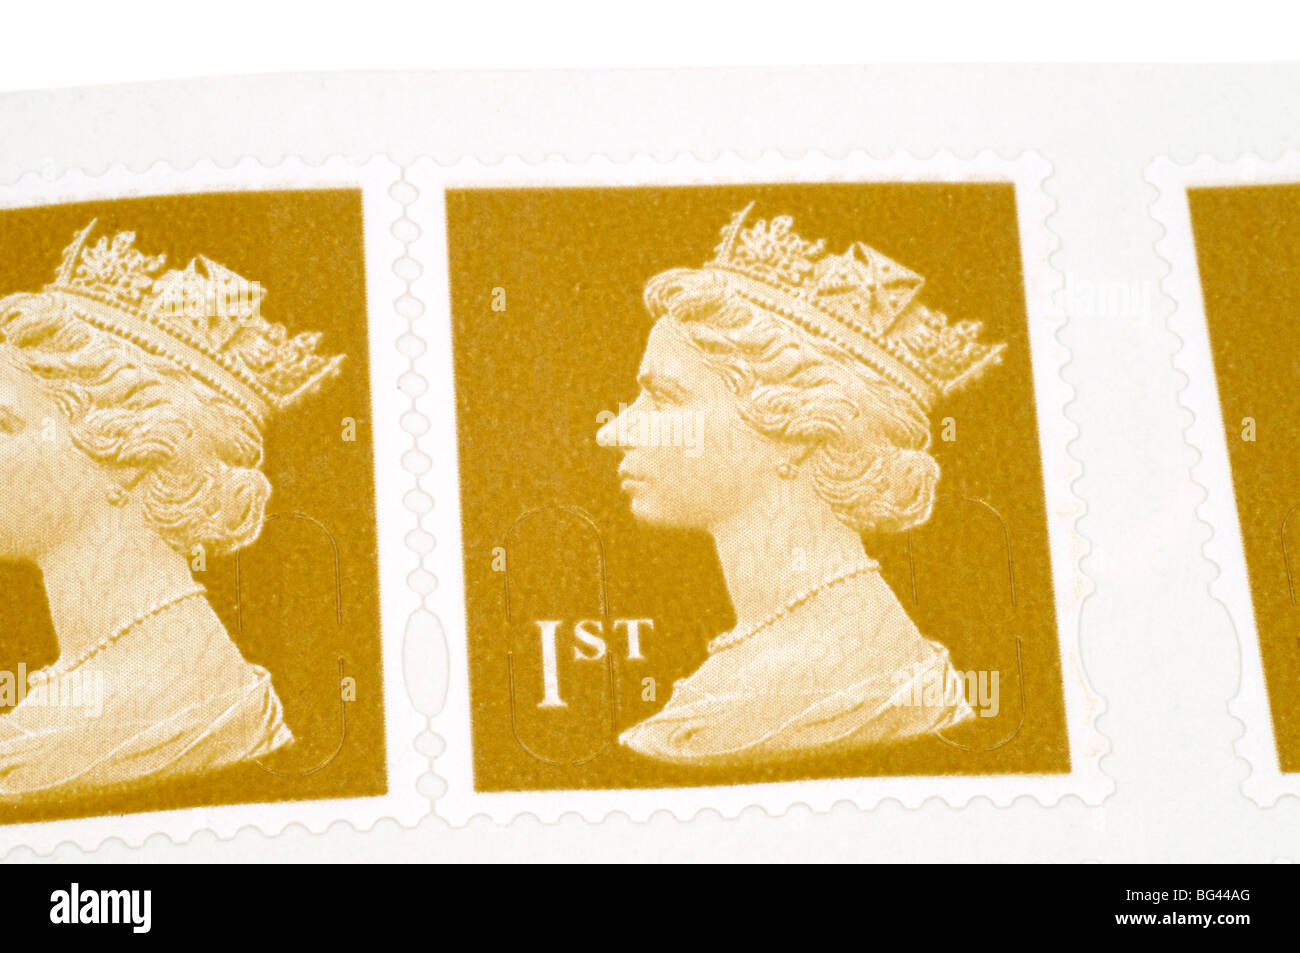 Book Of First Class Stamps - Stock Image